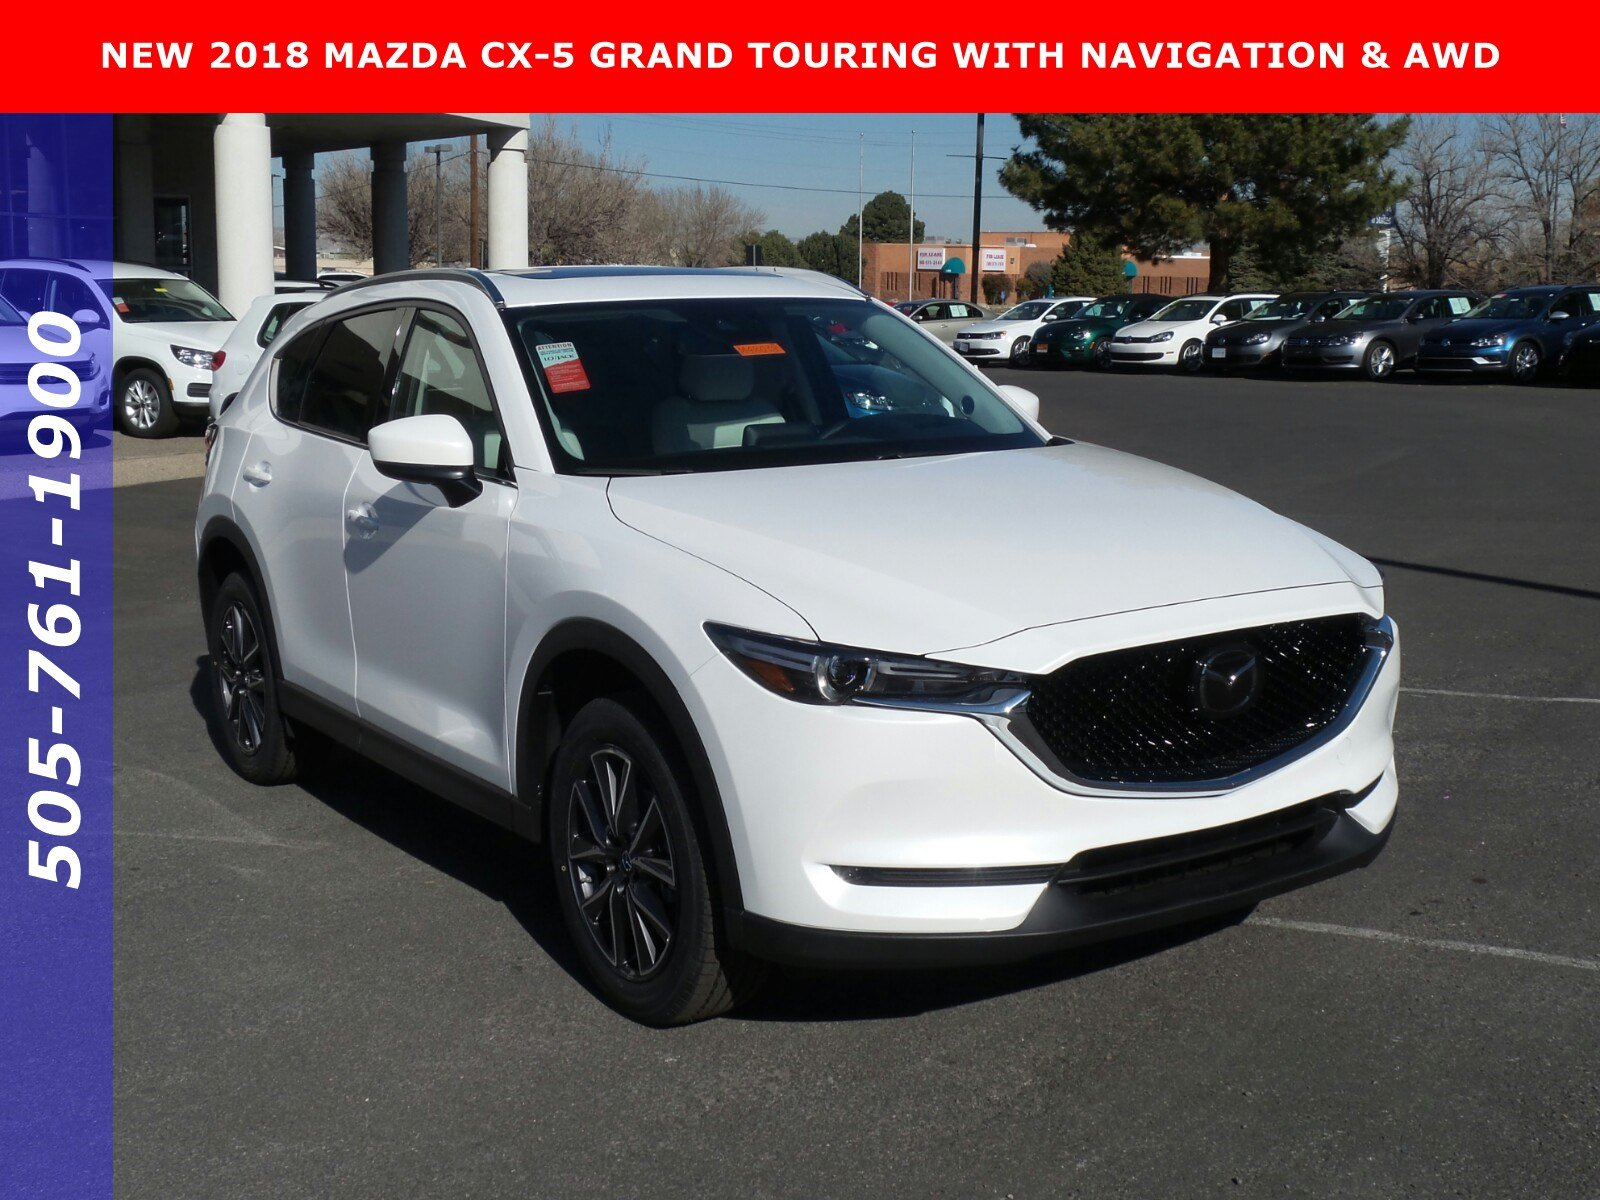 new 2018 mazda cx 5 grand touring sport utility in albuquerque m48038 university volkswagen mazda. Black Bedroom Furniture Sets. Home Design Ideas